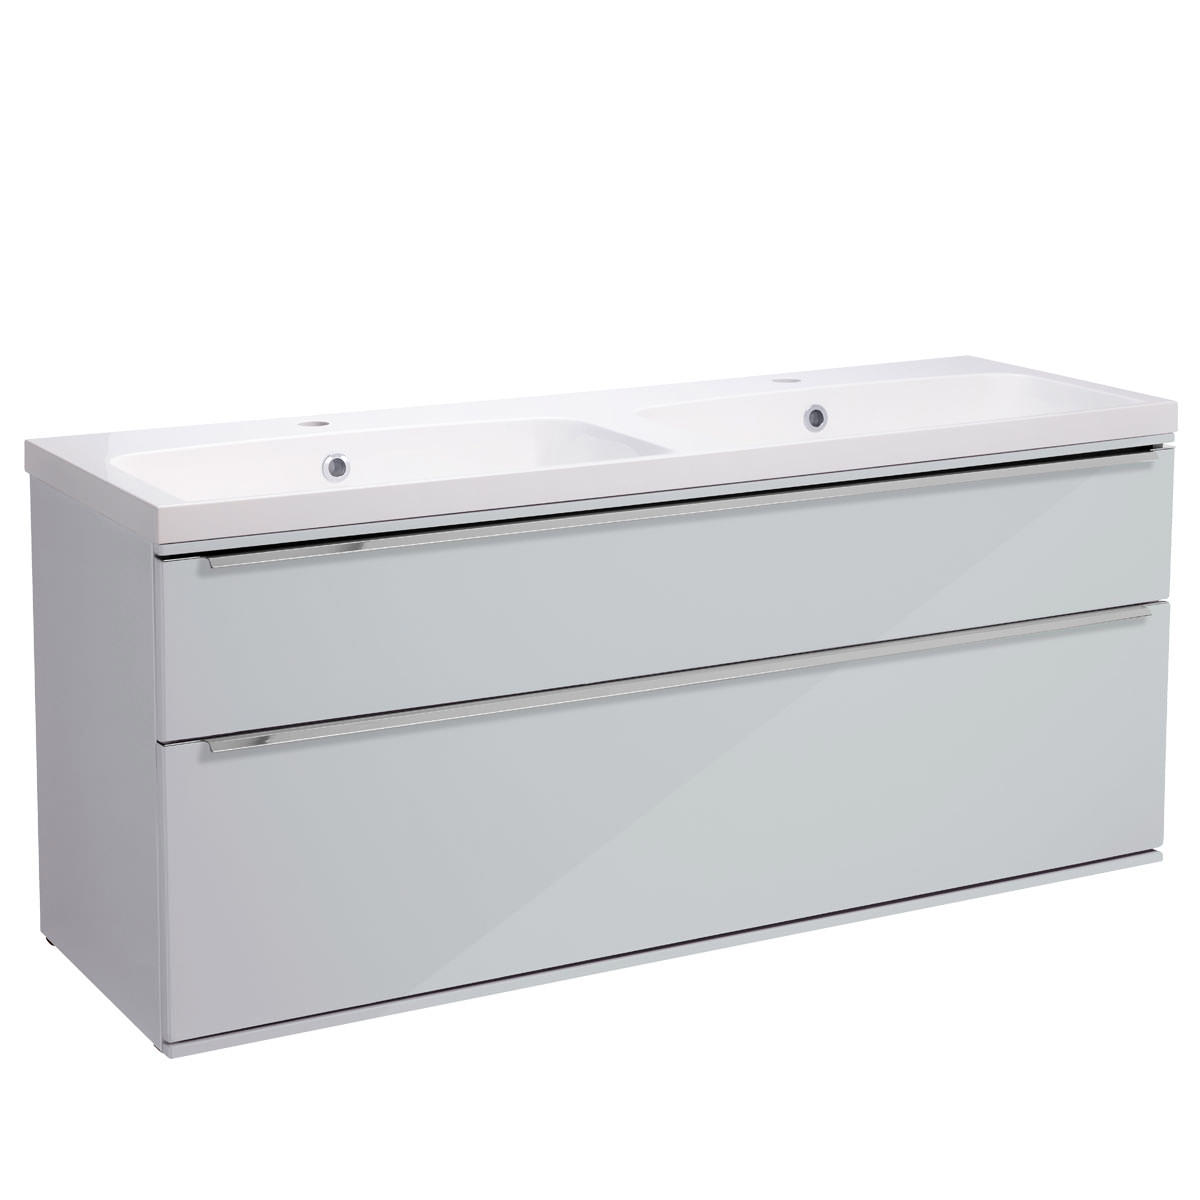 Roper Rhodes Scheme 1200mm Gloss White Wall Mounted Vanity